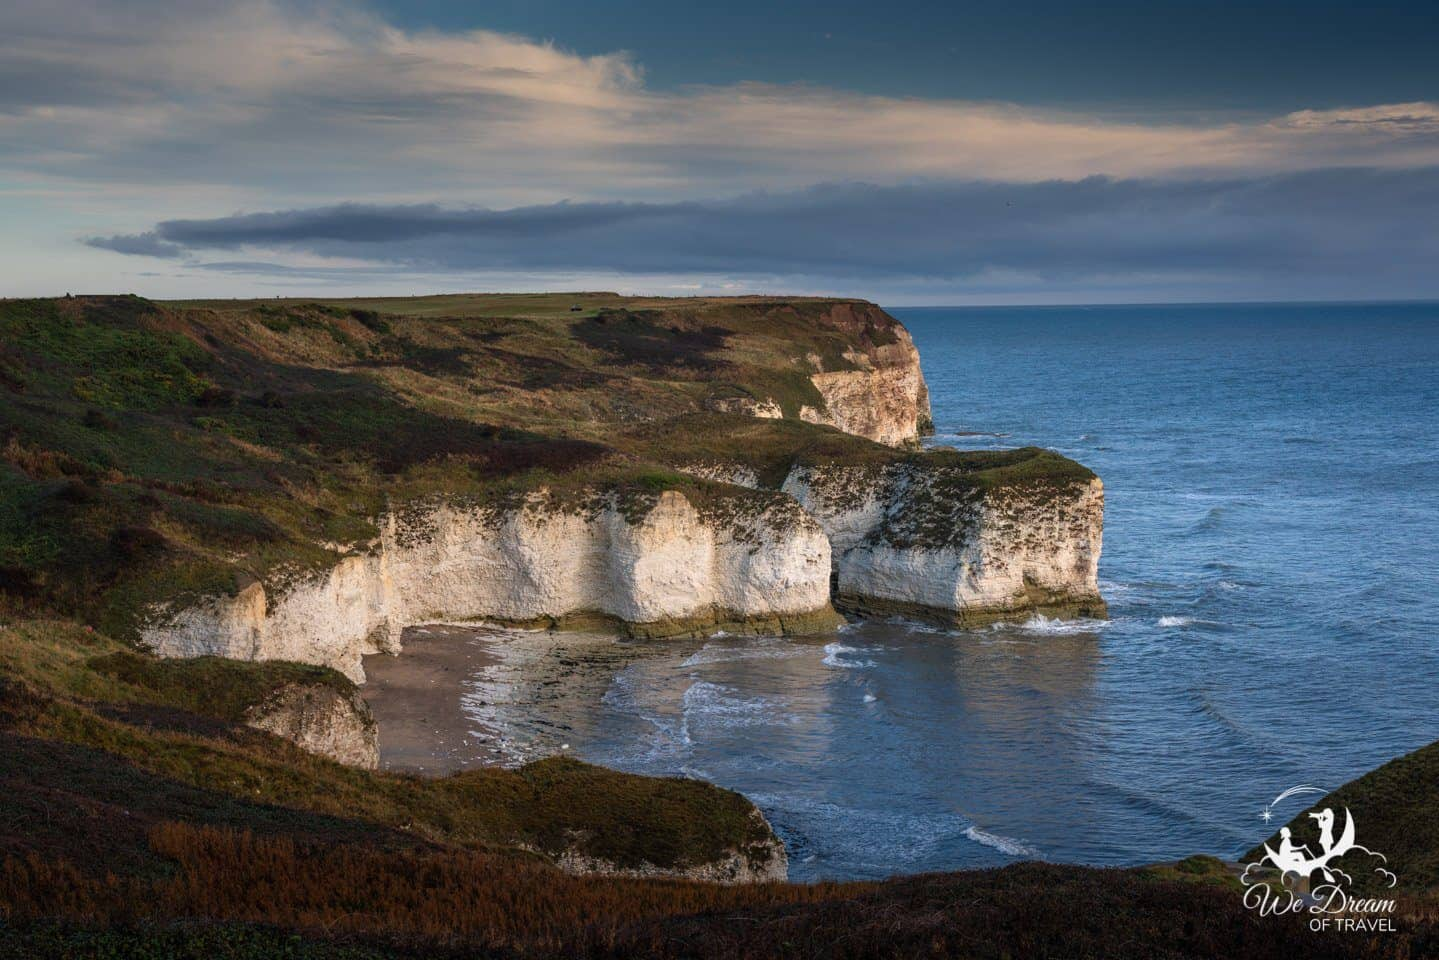 Sunrise at the Flamborough Cliffs